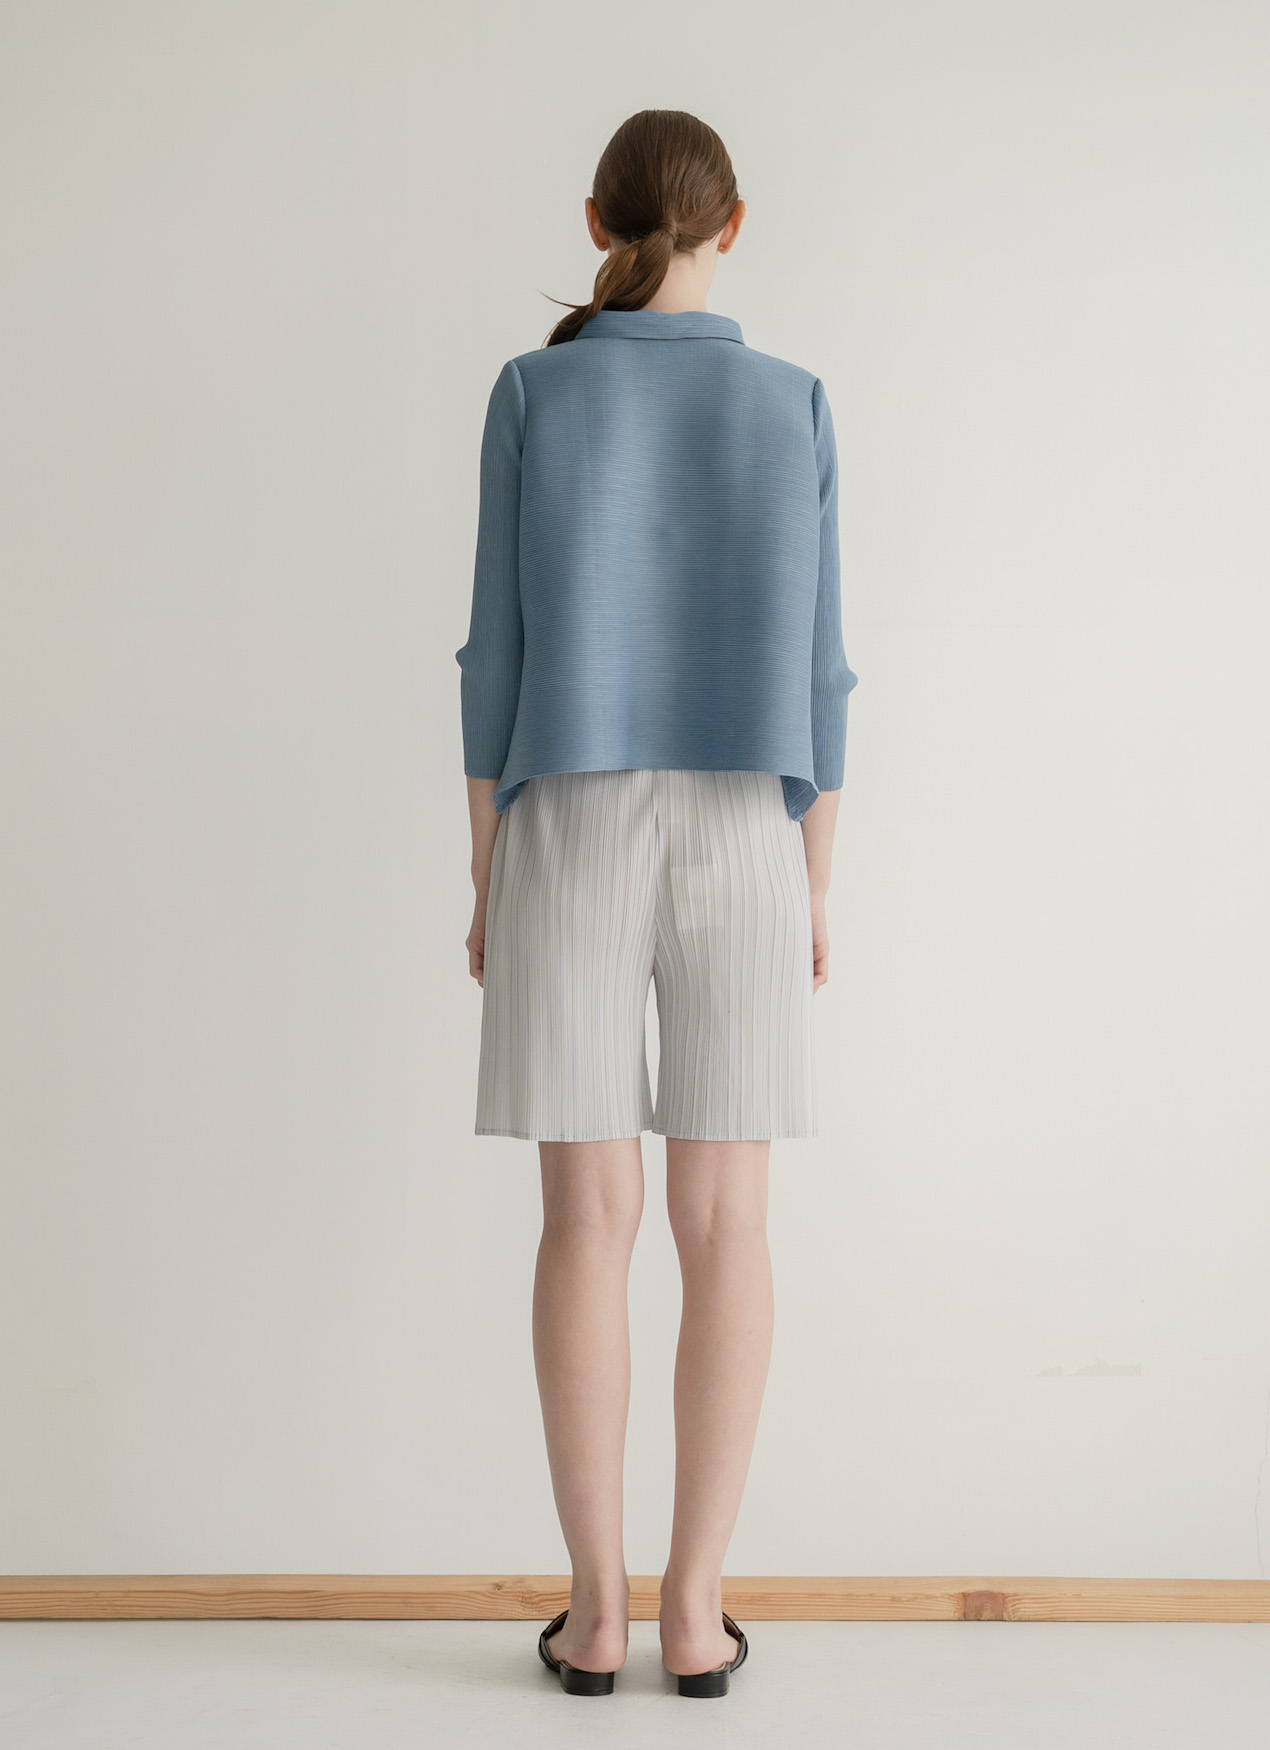 Orgeo Official Gani Top - Baby Blue